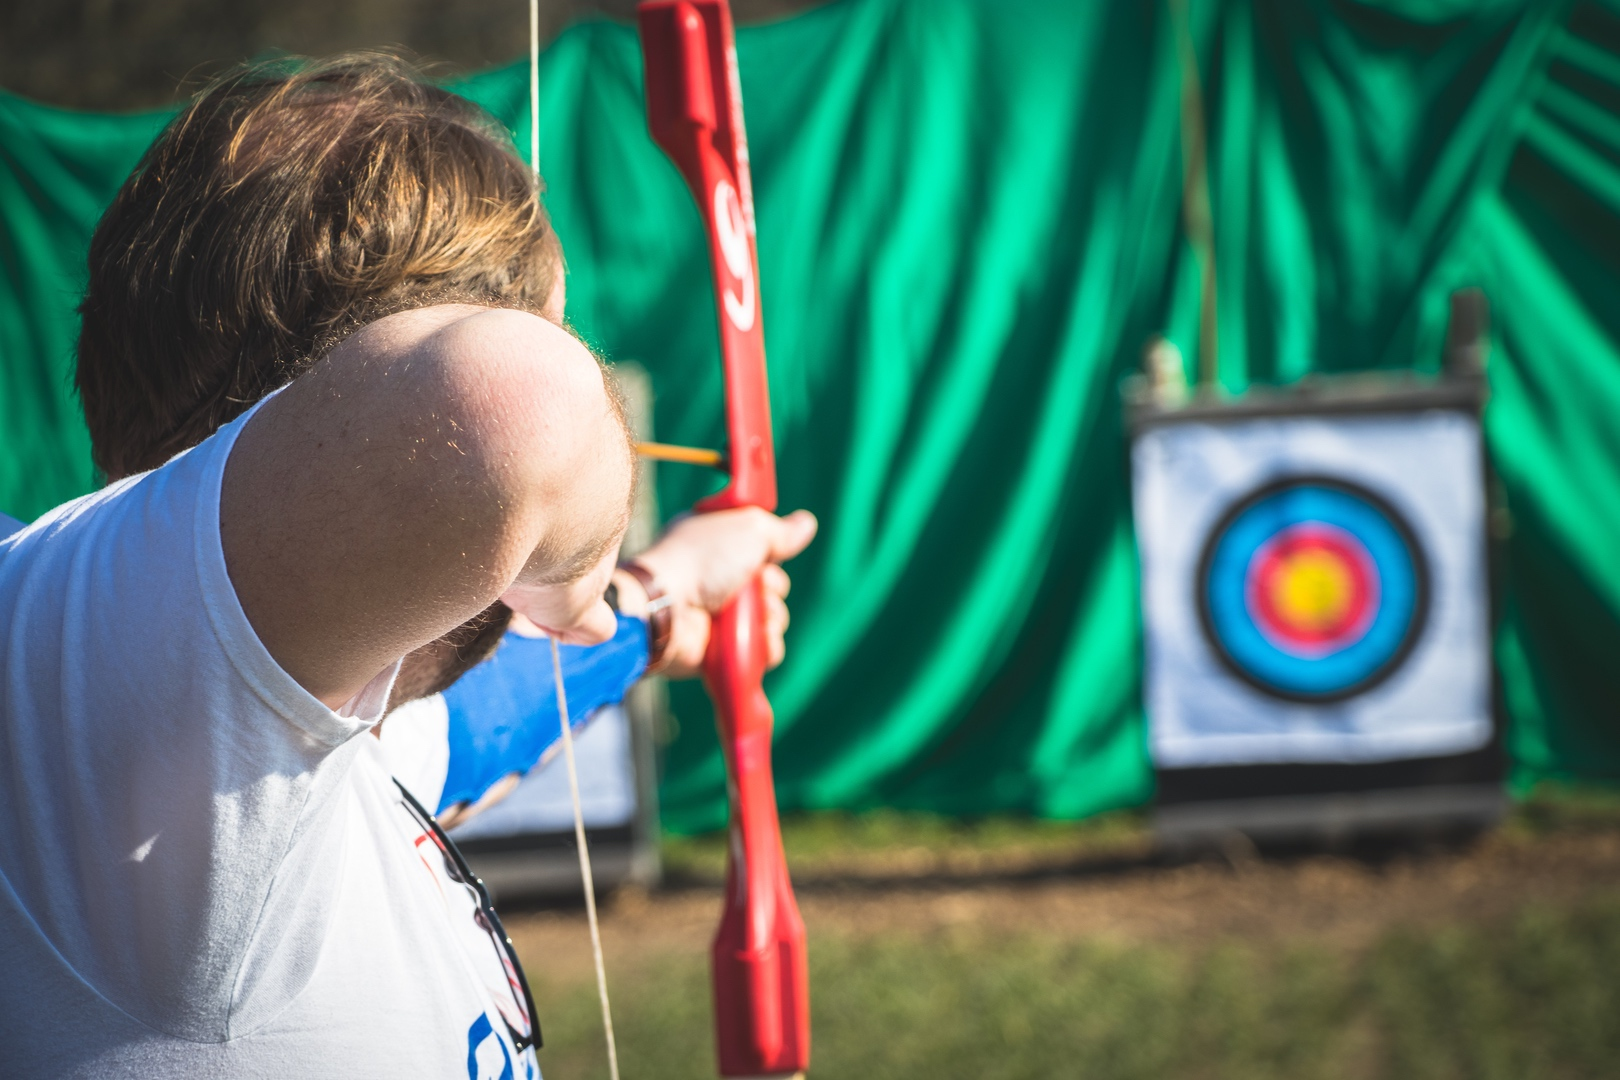 A man playing Archery after looking for fun activities for adults in The New Forest.